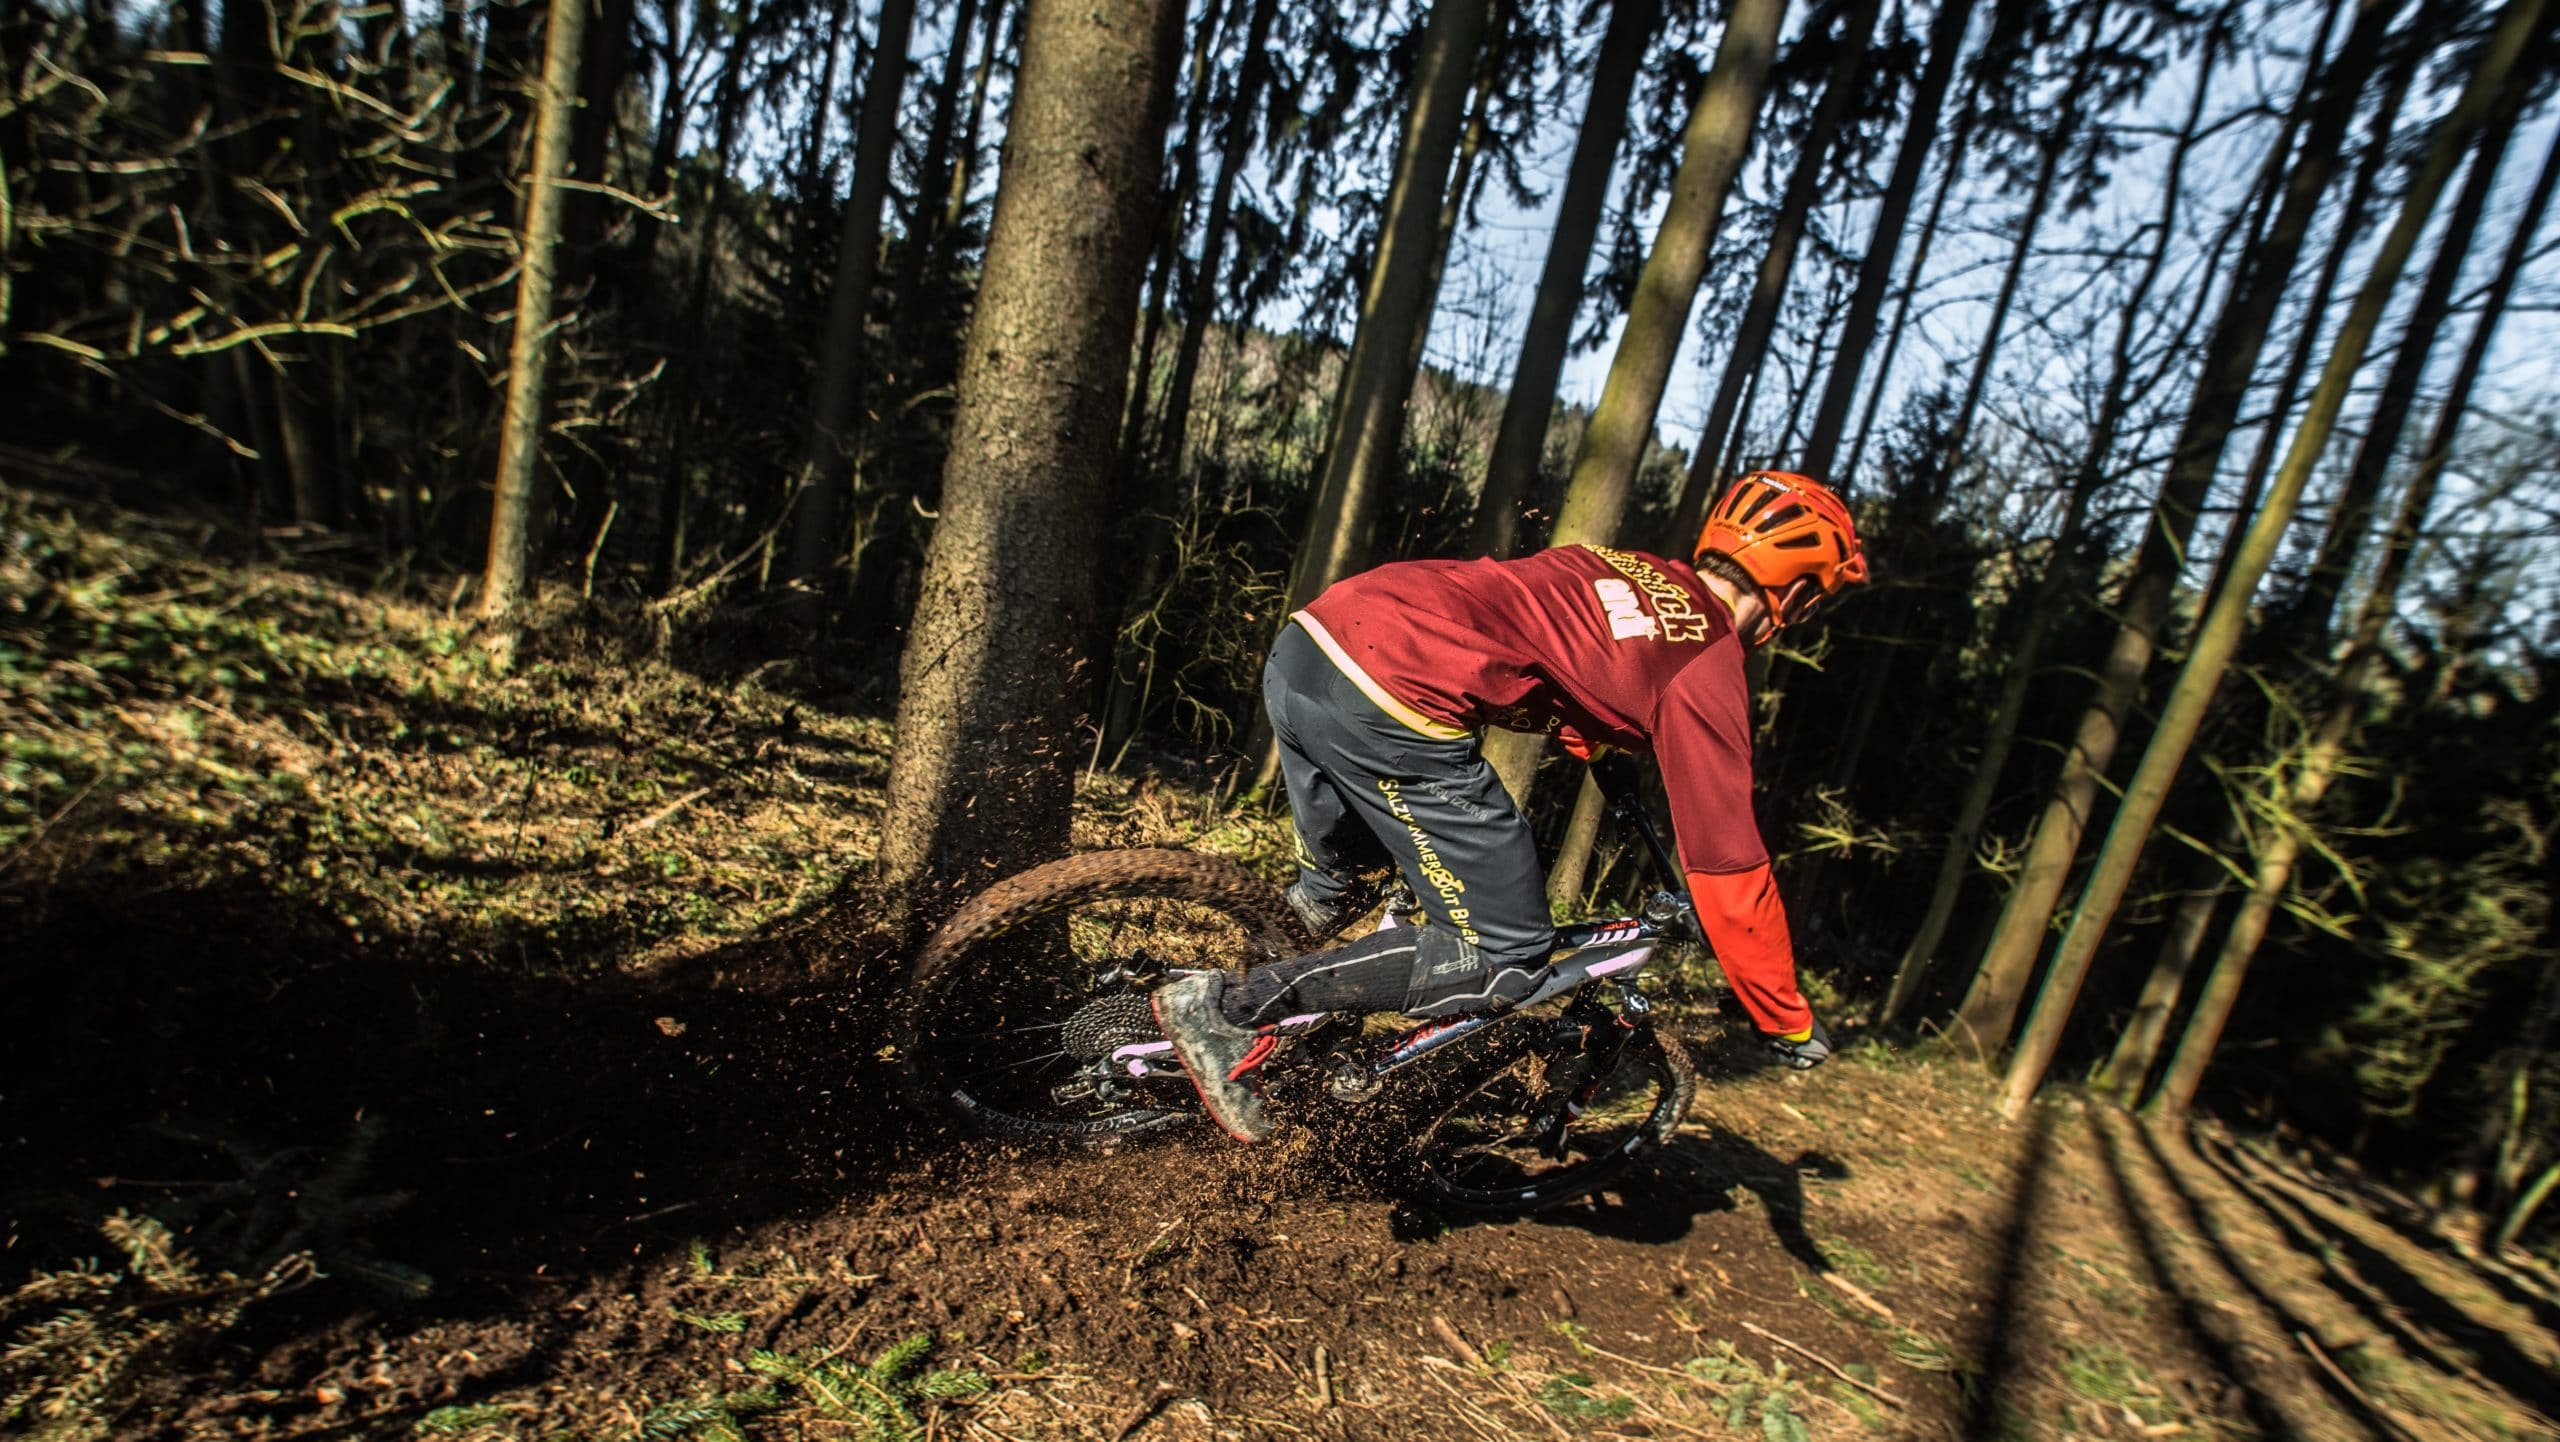 Weight of a Carbon Mountain Bike vs. Aluminum: Image of mountain biker with helmet